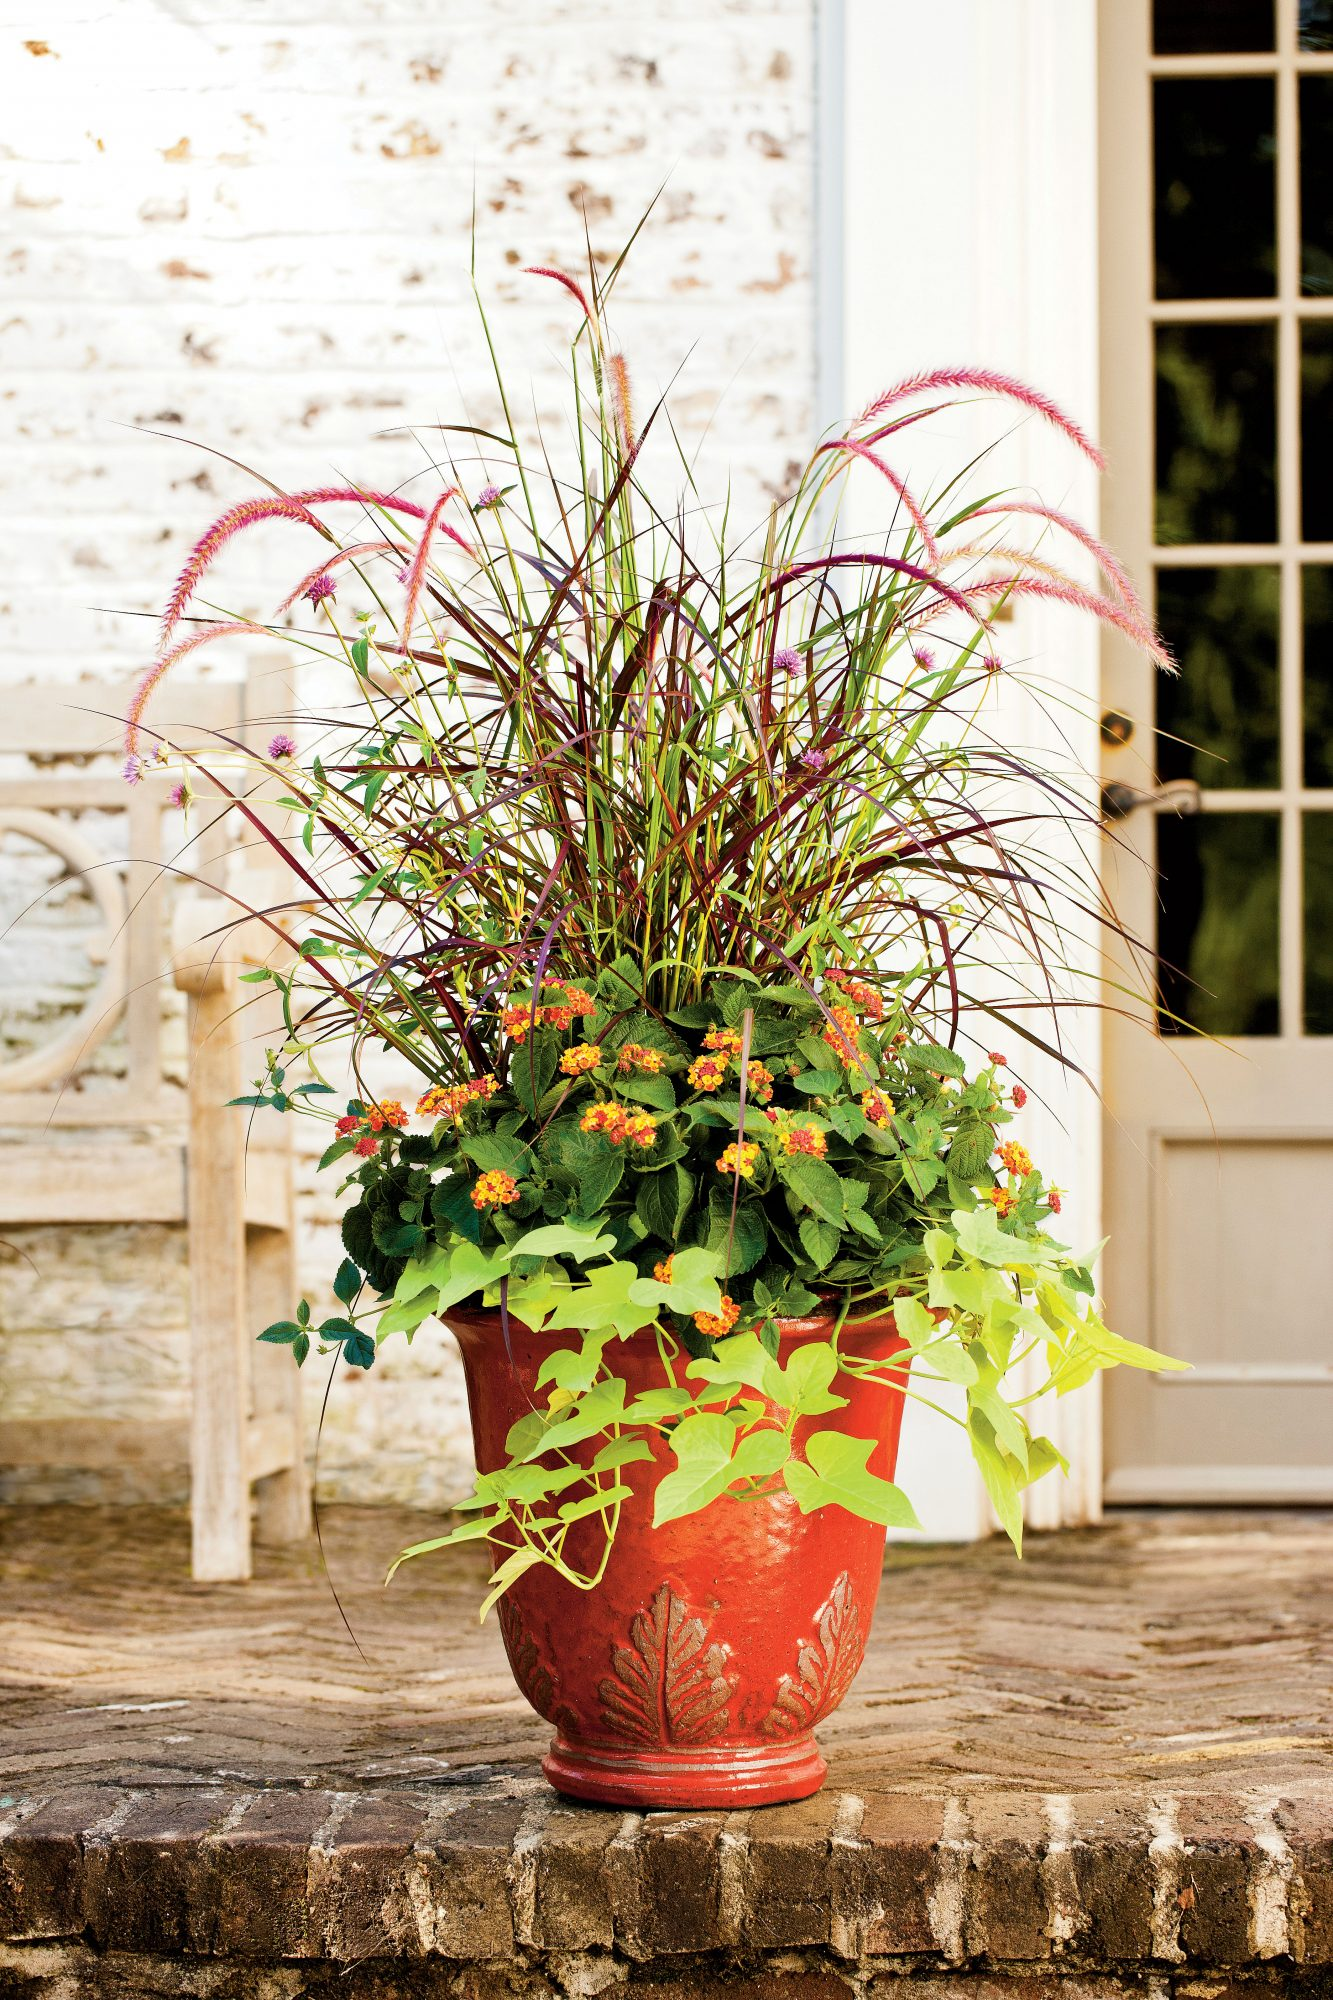 125 Container Gardening Ideas on